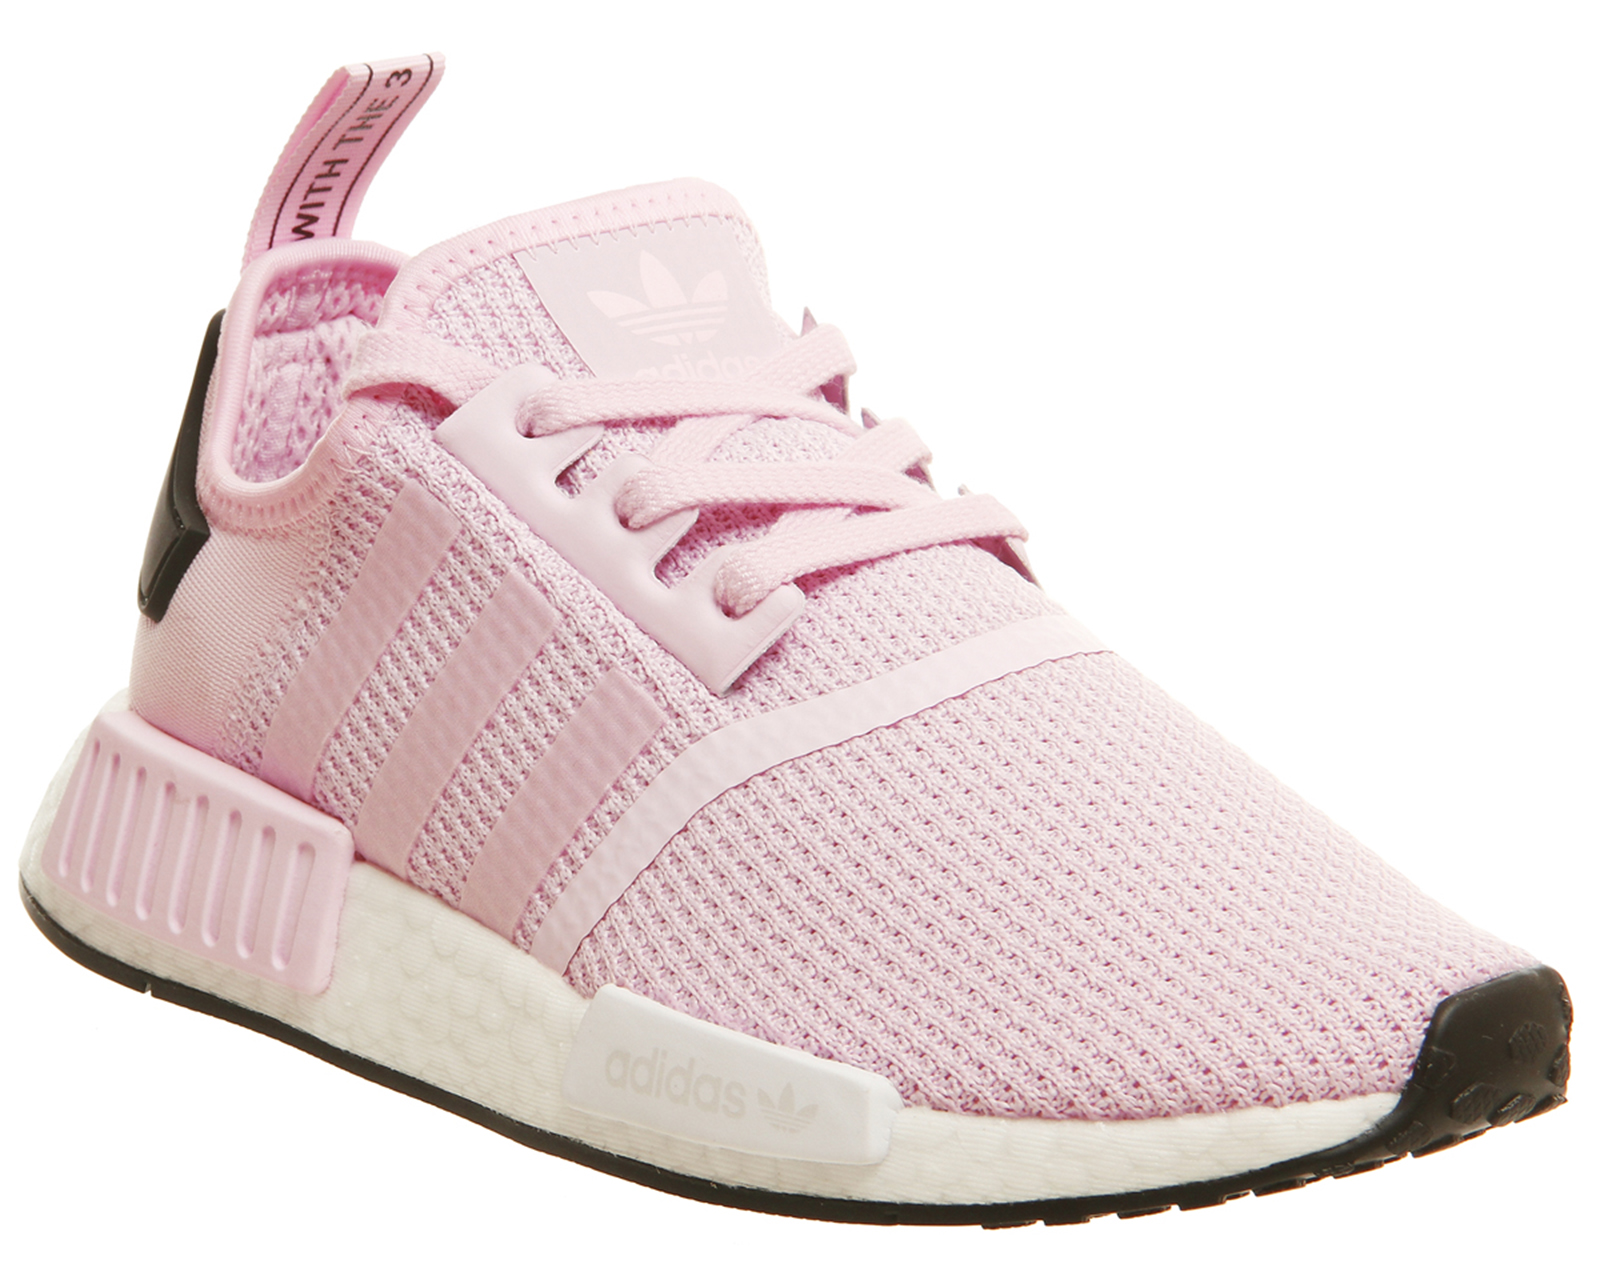 new concept 1e036 c16bc reduced white pink womens adidas nmd runner shoes 97373 ac916